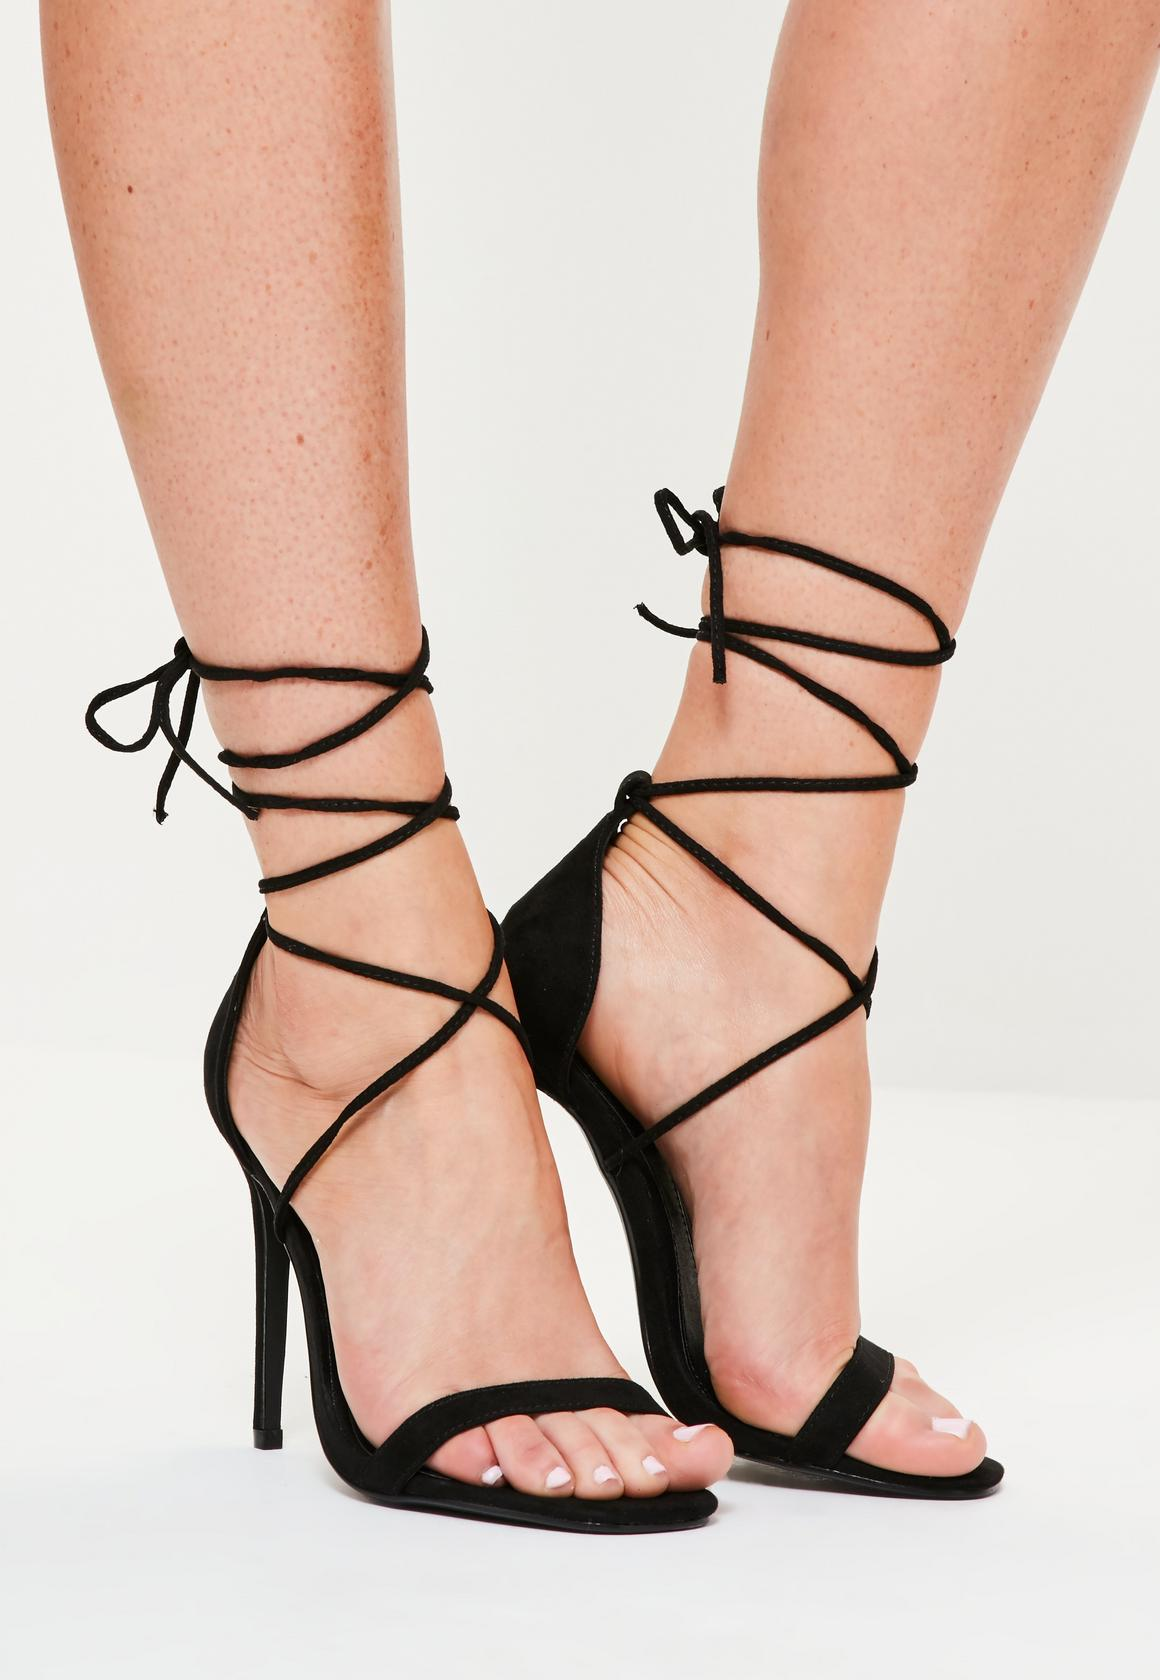 Black Lace Up Sandal Heels 8mfbAJ3b